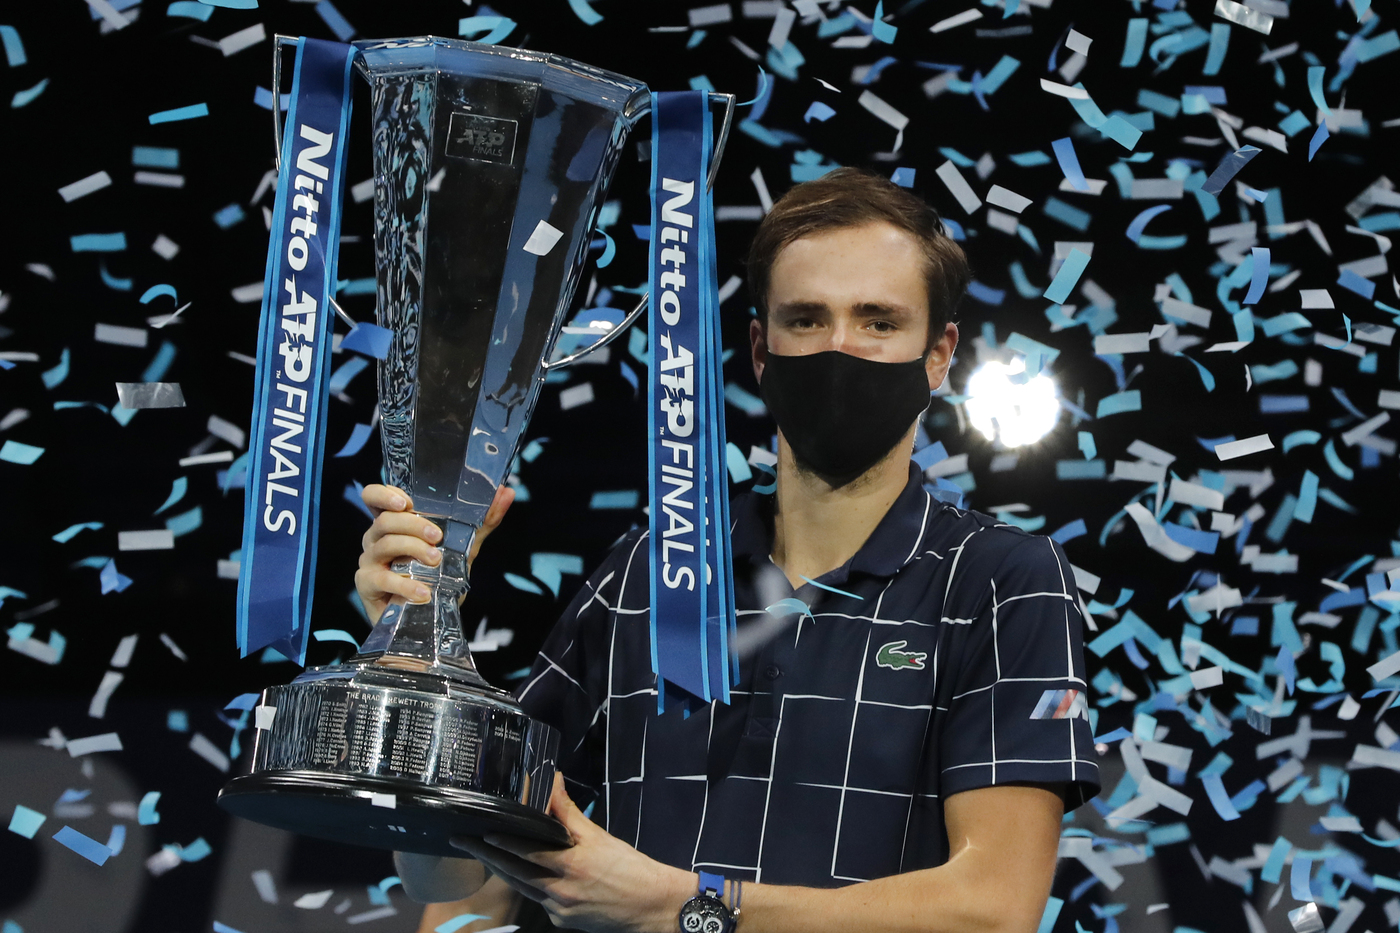 VIDEO Medvedev-Thiem 2-1 |  highlights Finale ATP Finals 2020 |  il russo vince in rimonta